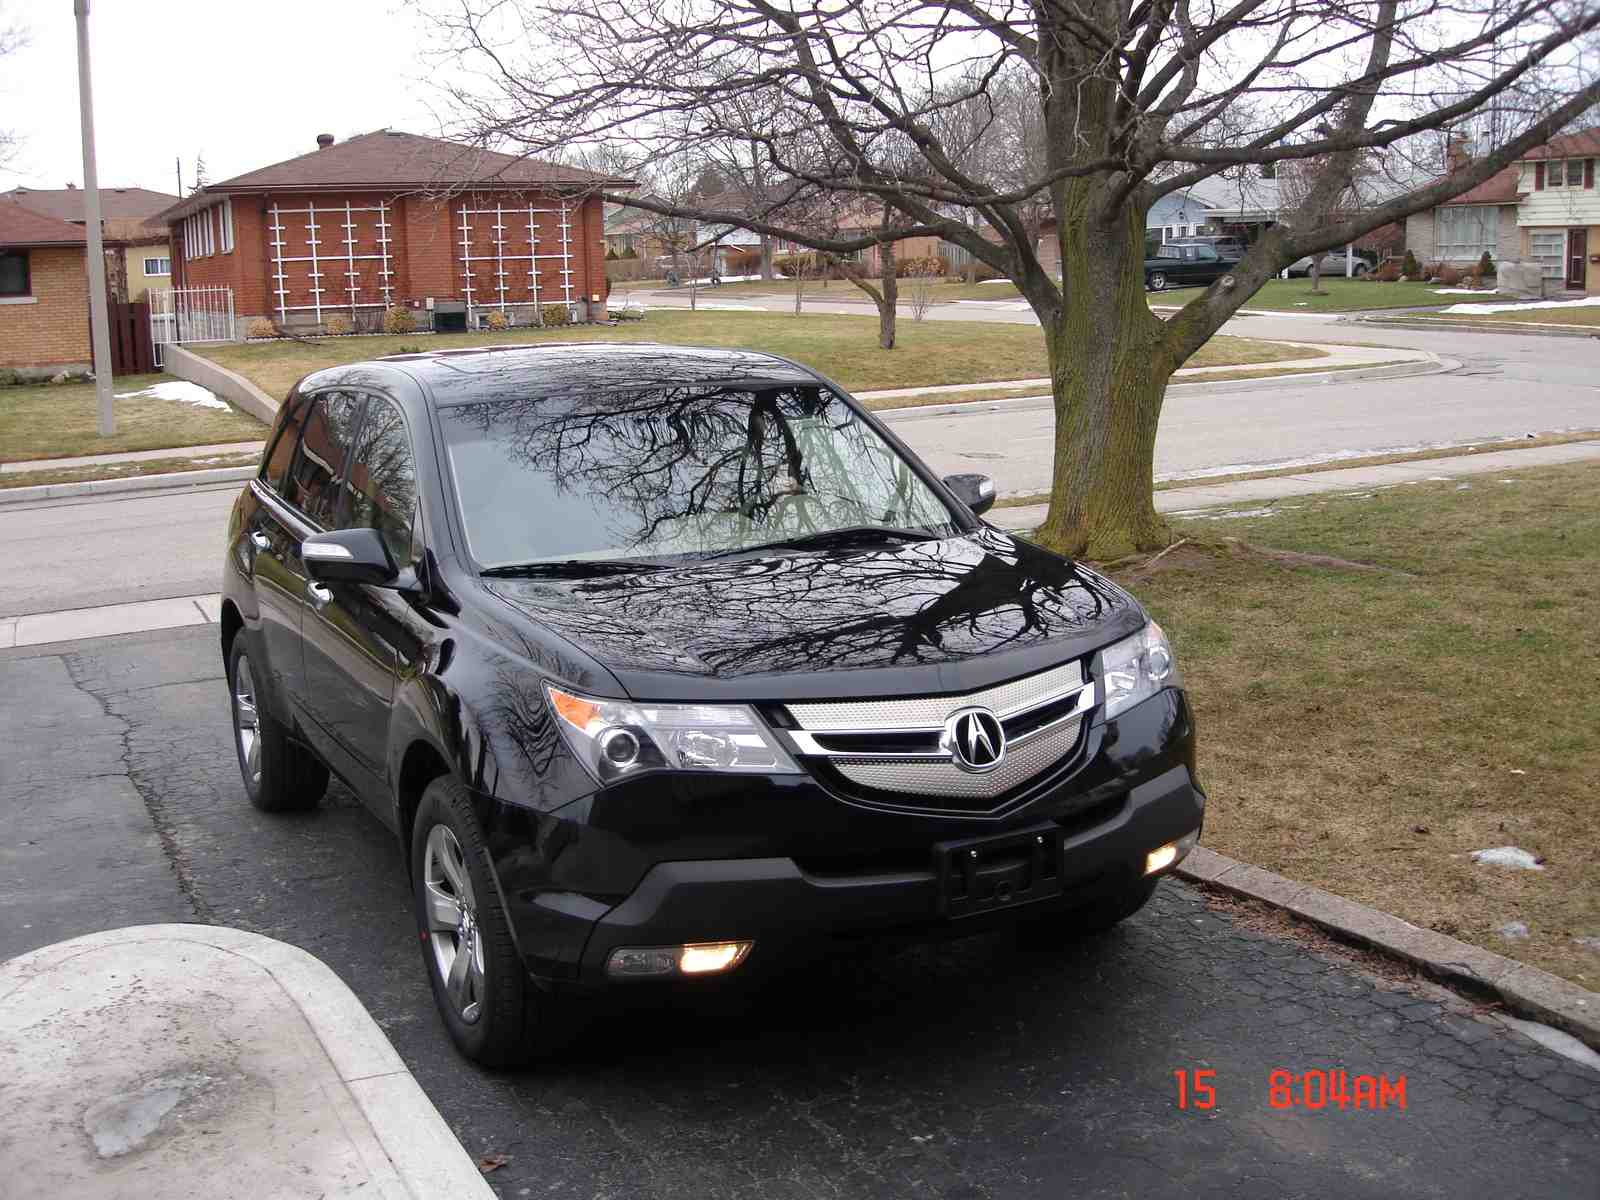 2007 acura mdx owner's manual pdf (479 pages).